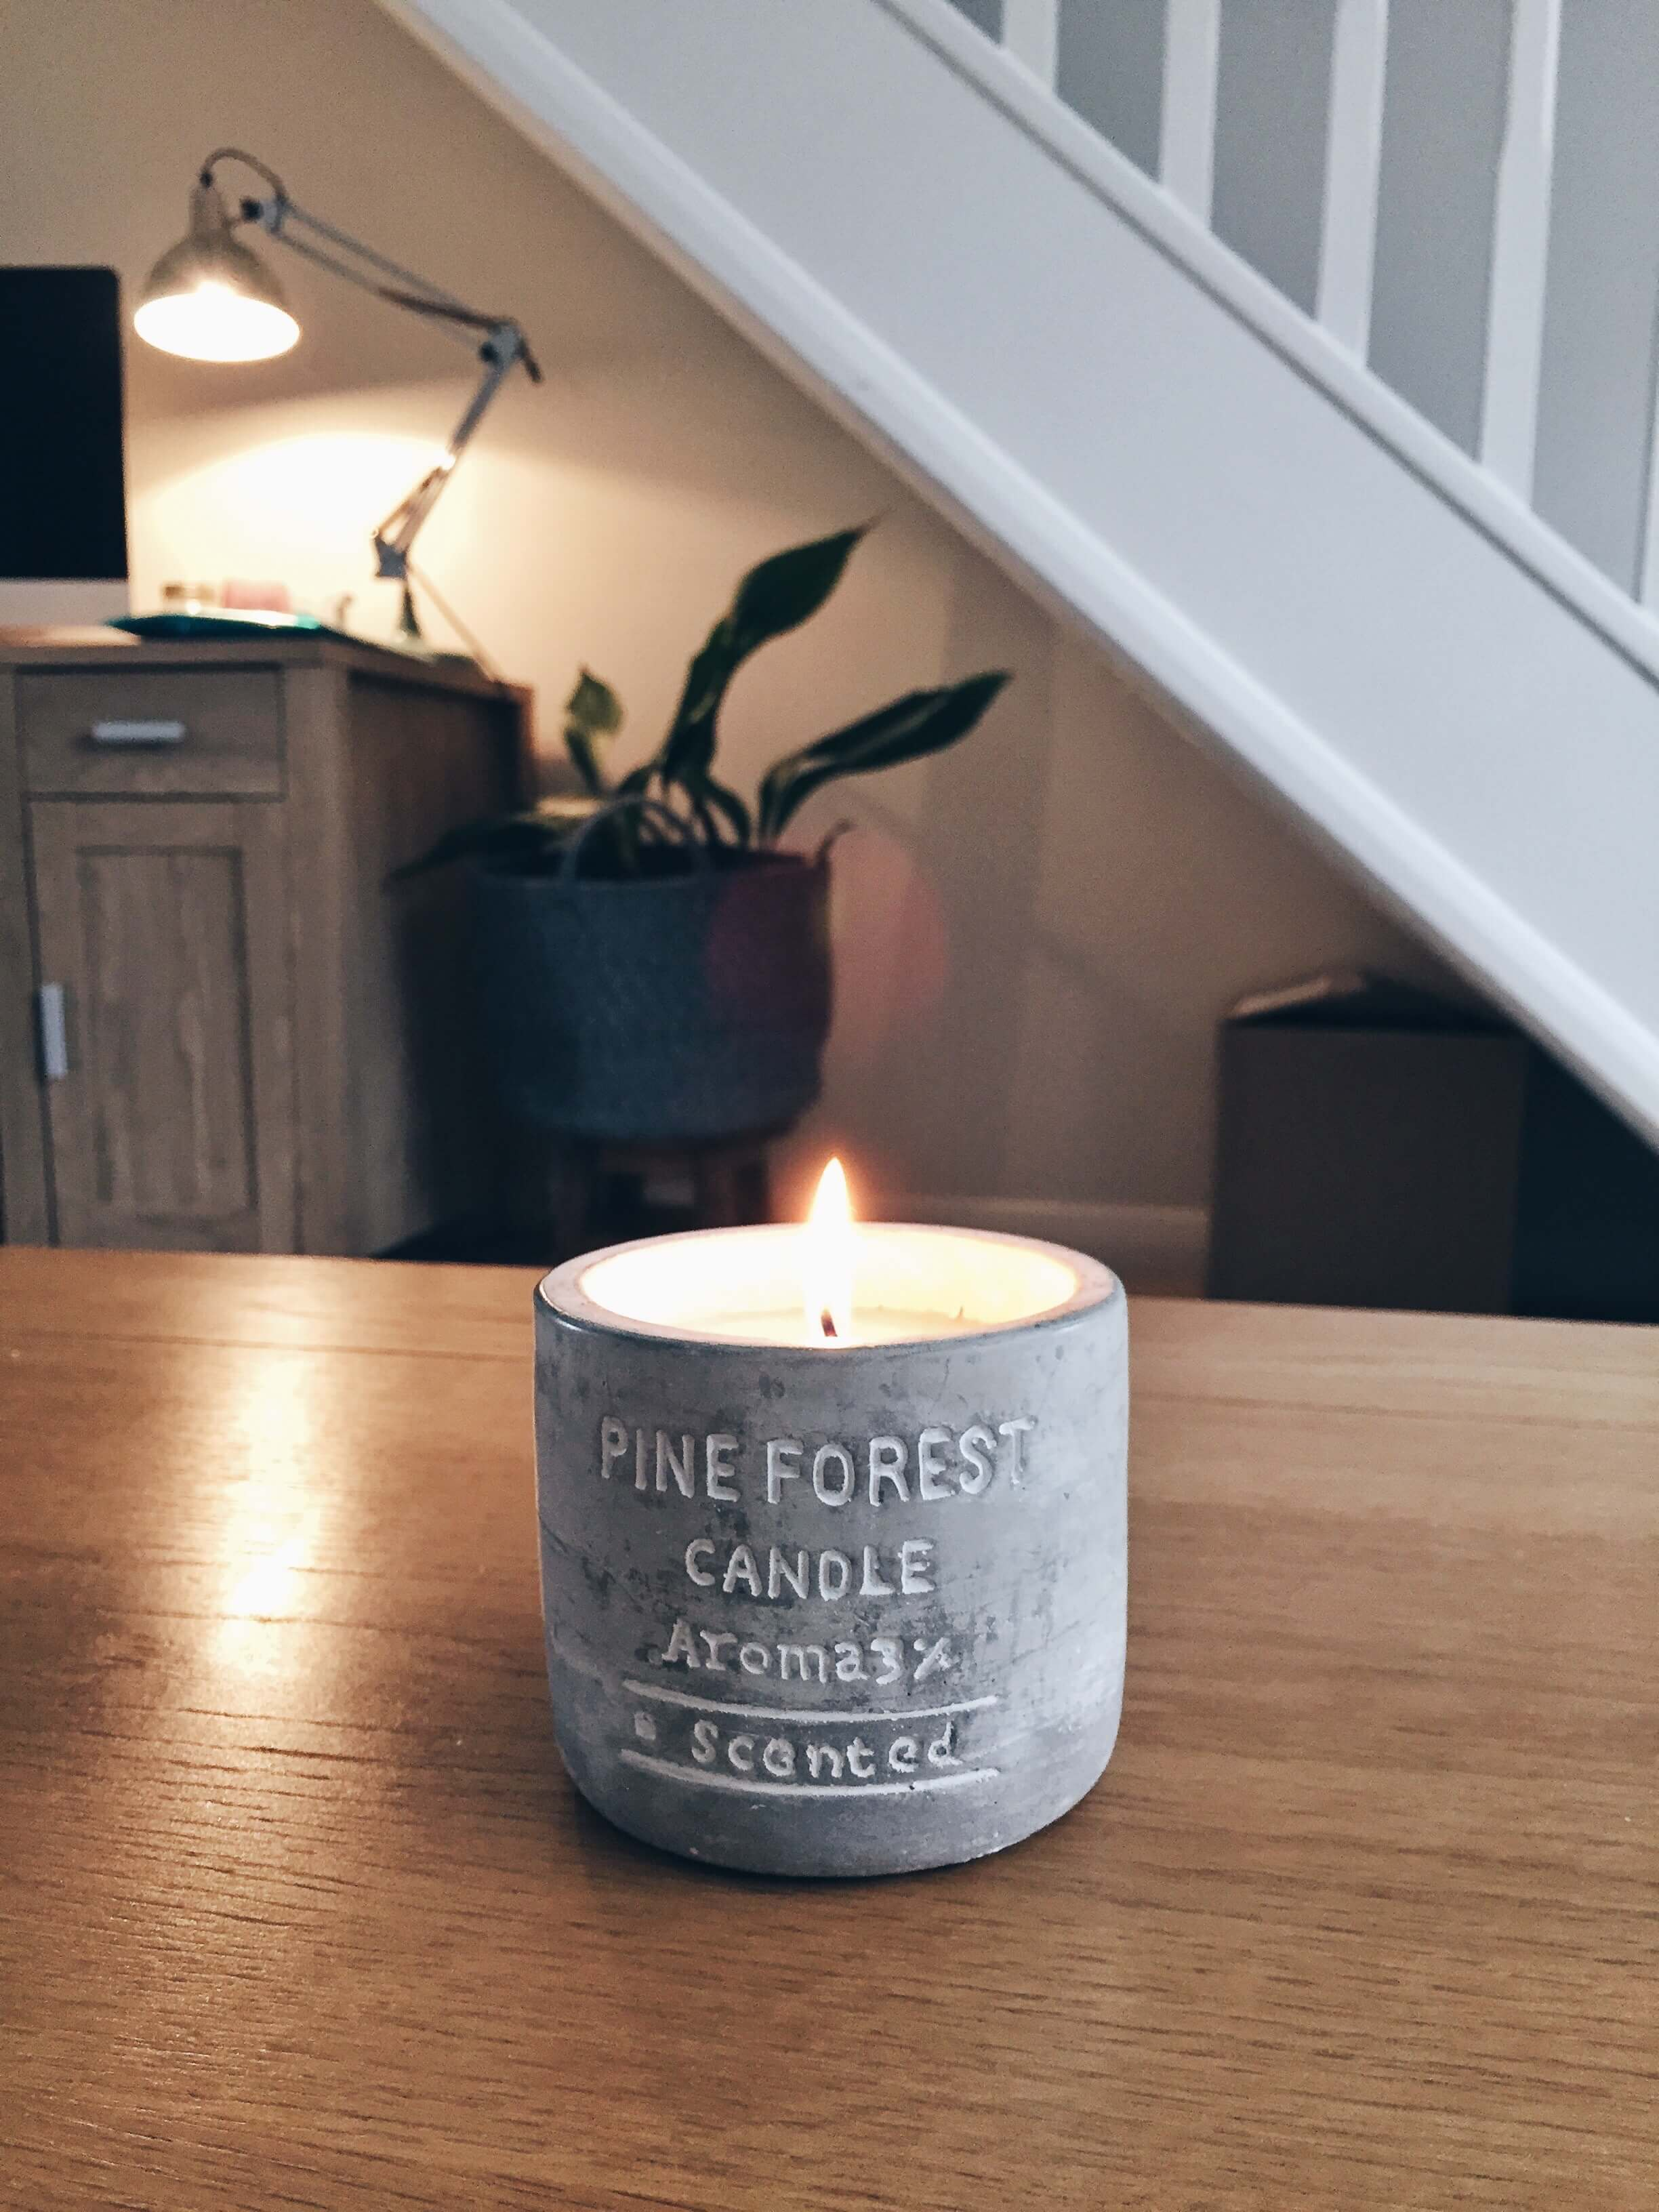 A H&M candle that I picked up